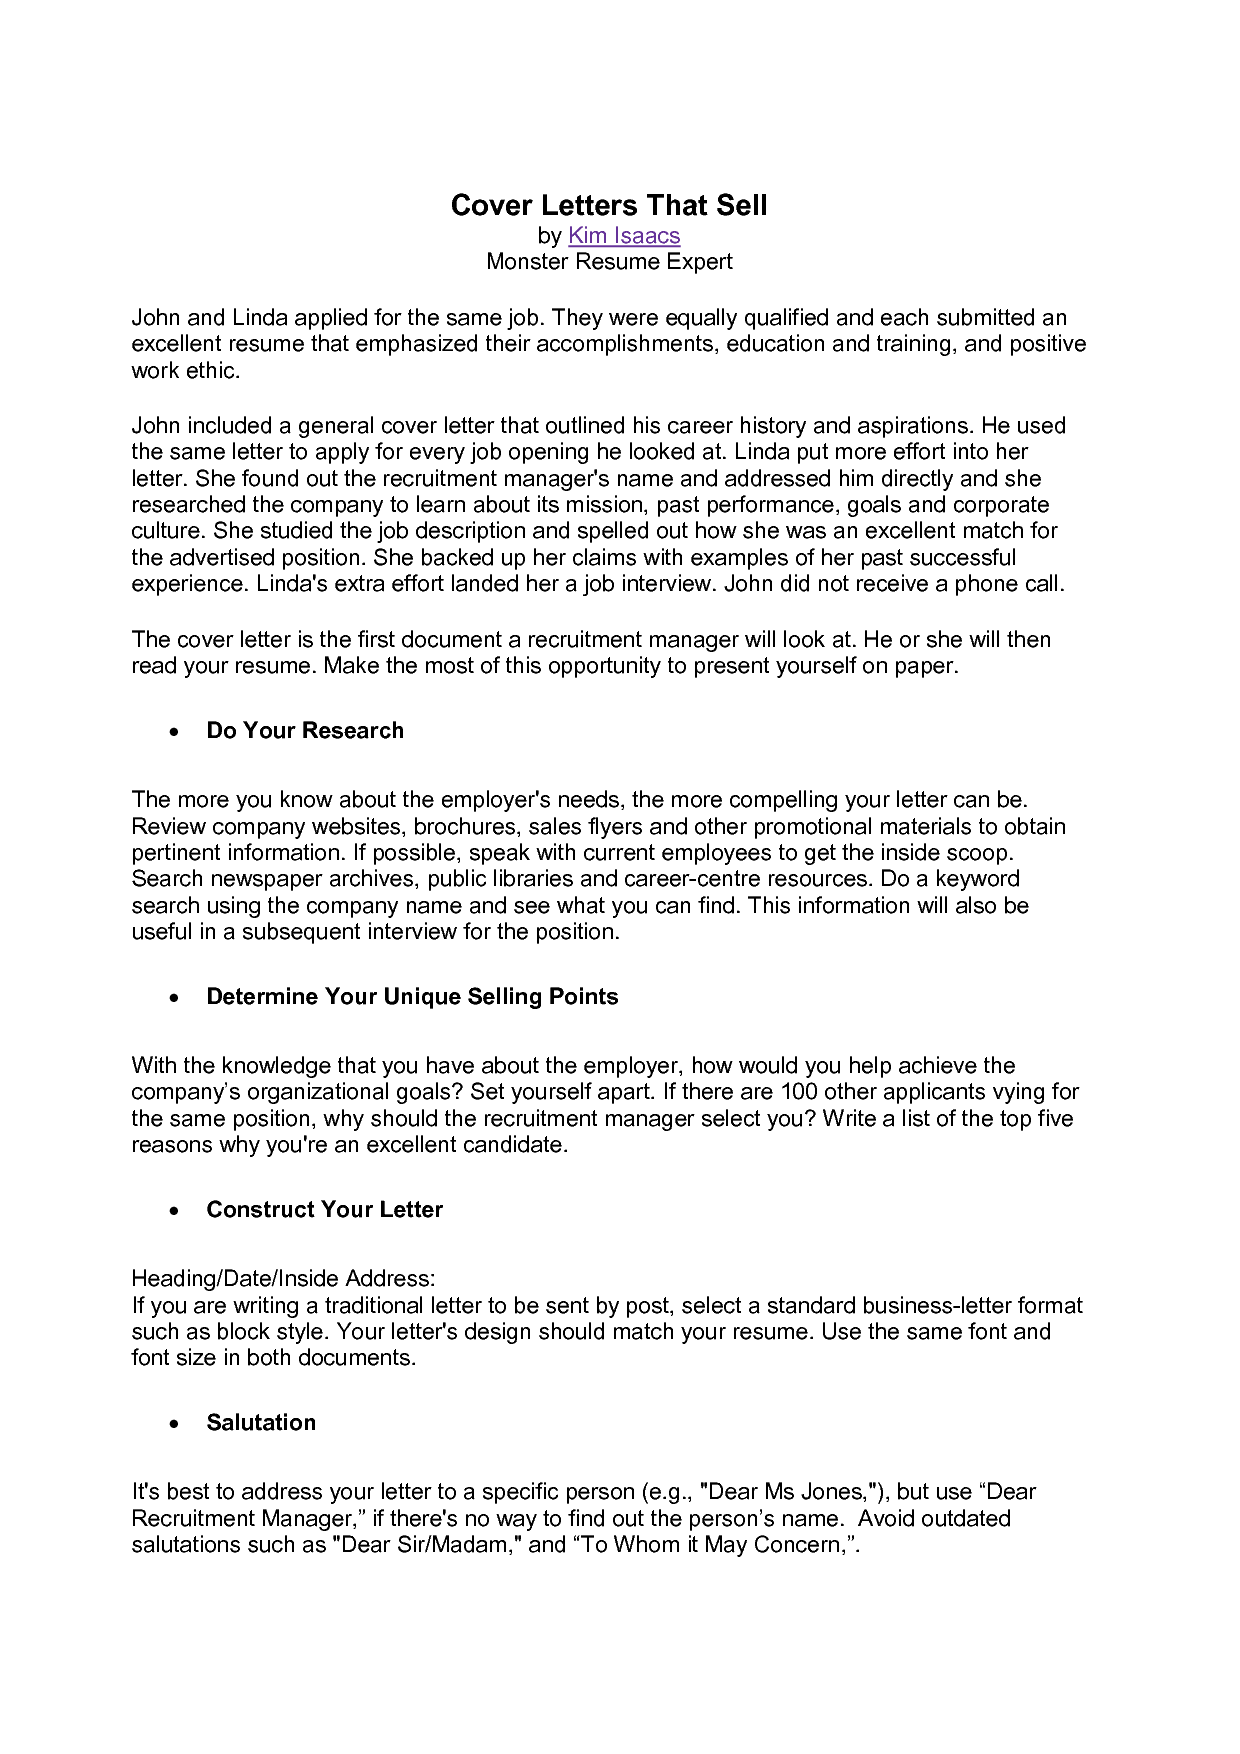 Monster cover letter free download monster cover letter monster monster cover letter free download monster cover letter monster cover letter template monster cover madrichimfo Gallery